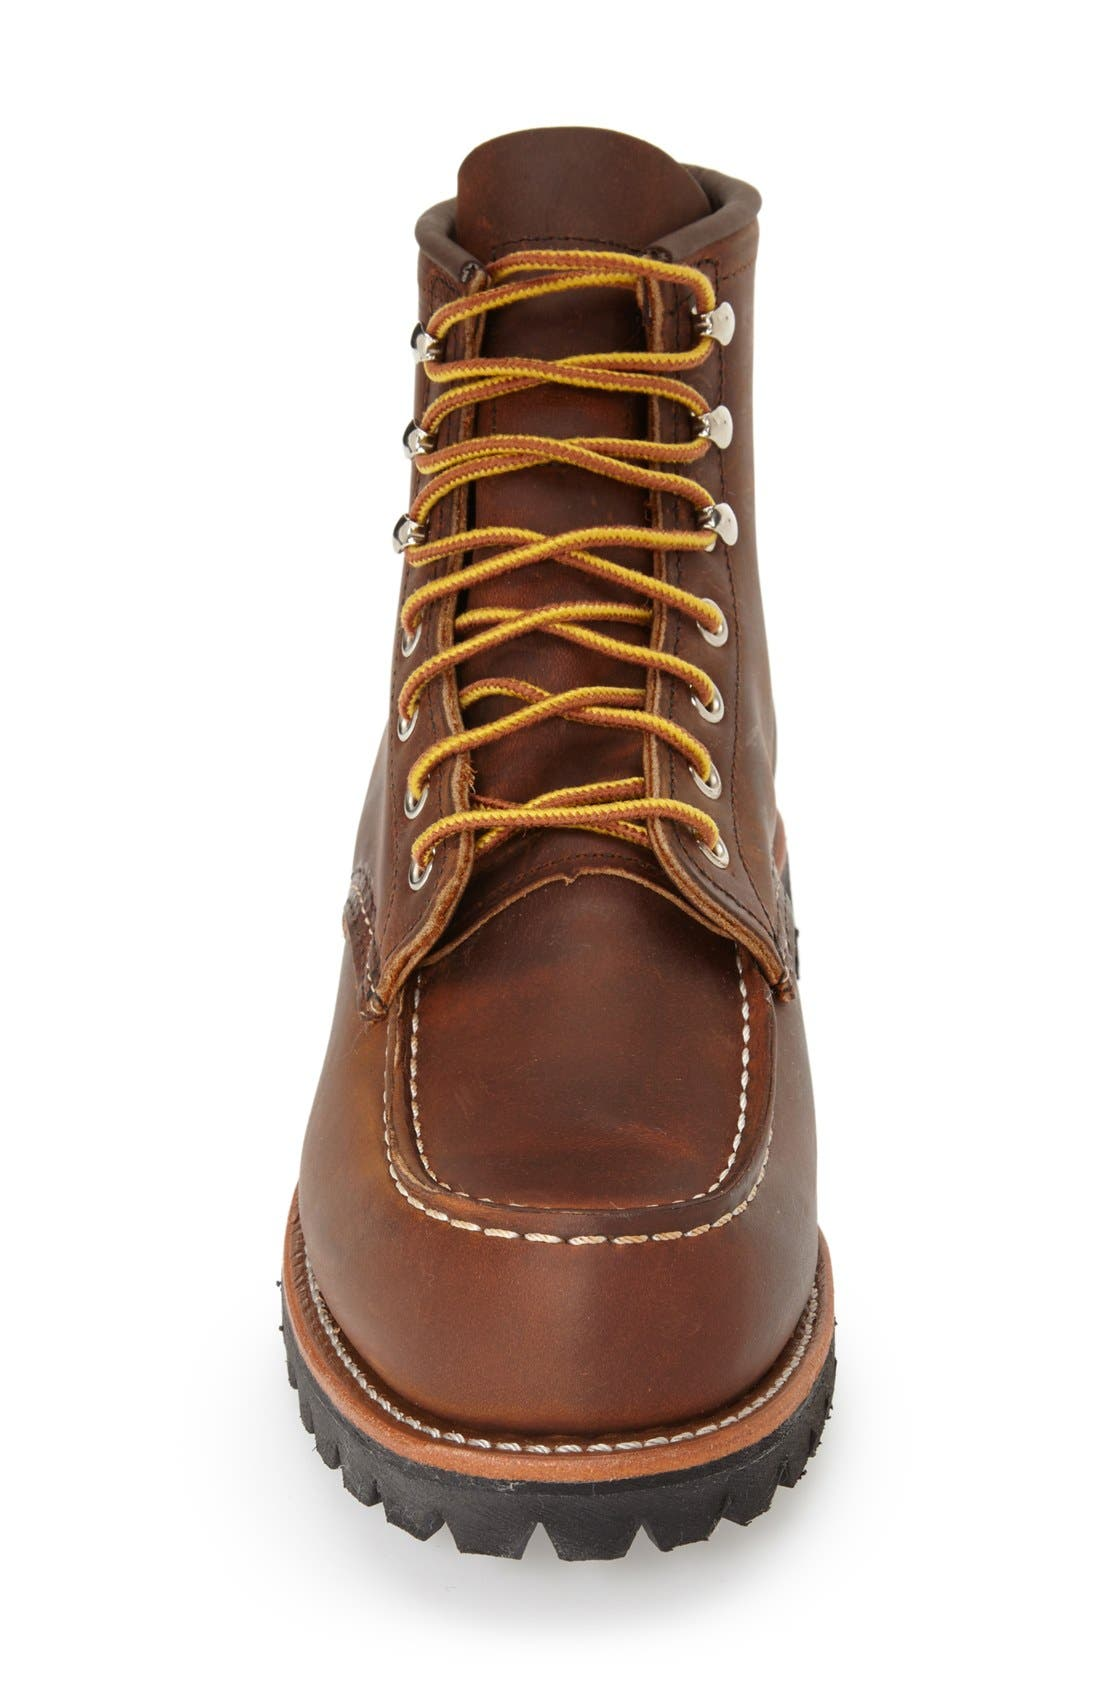 'Roughneck' Boot,                             Alternate thumbnail 2, color,                             COPPER ROUGH AND TOUGH LEATHER